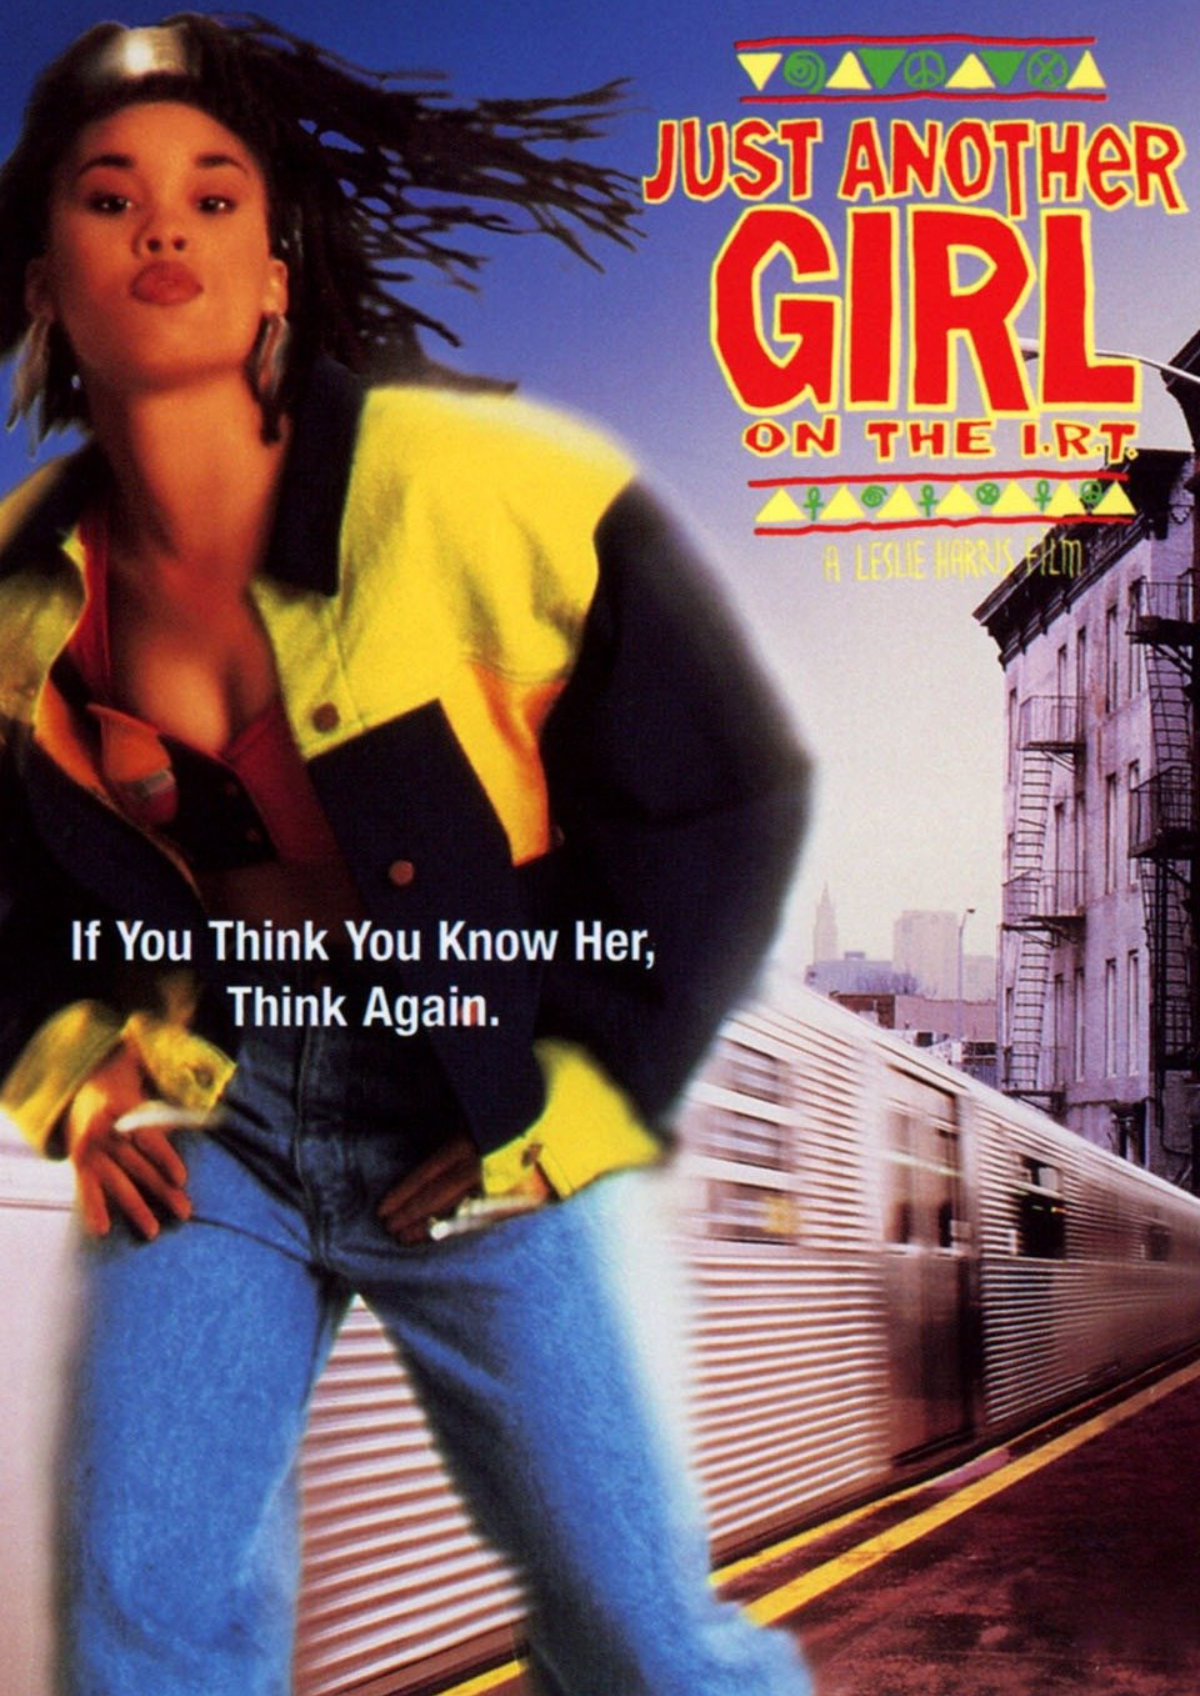 'Just Another Girl on the I.R.T.' movie poster